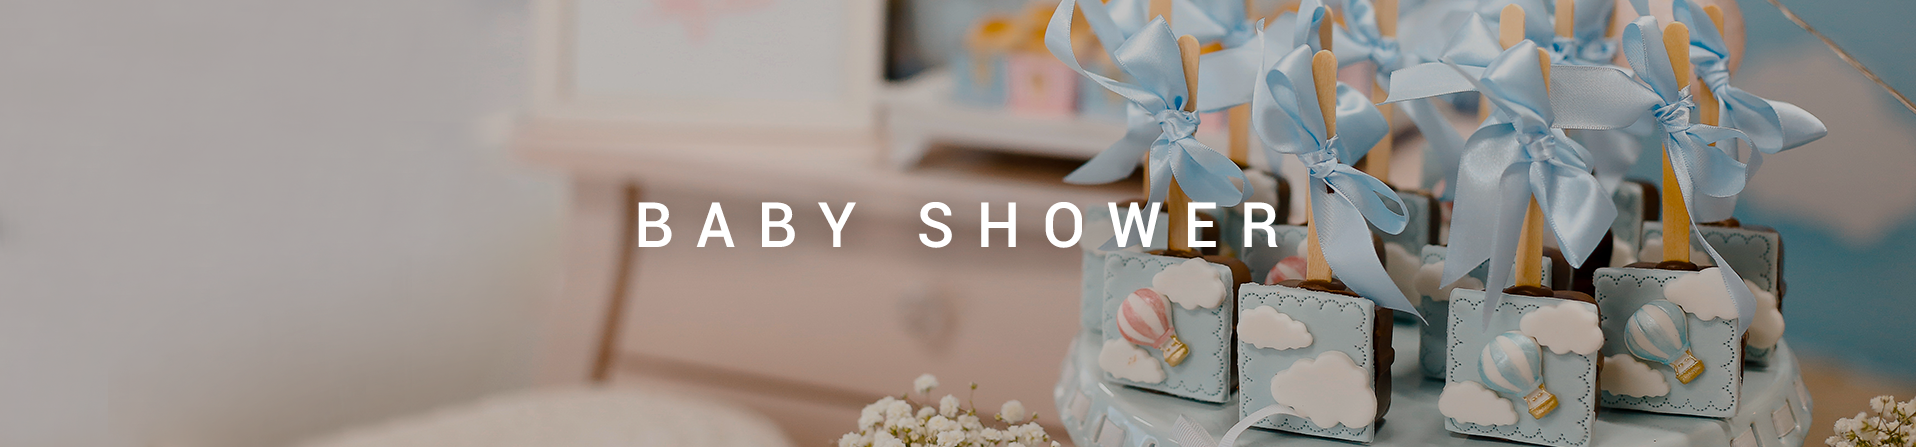 - Gifts For Baby Shower -